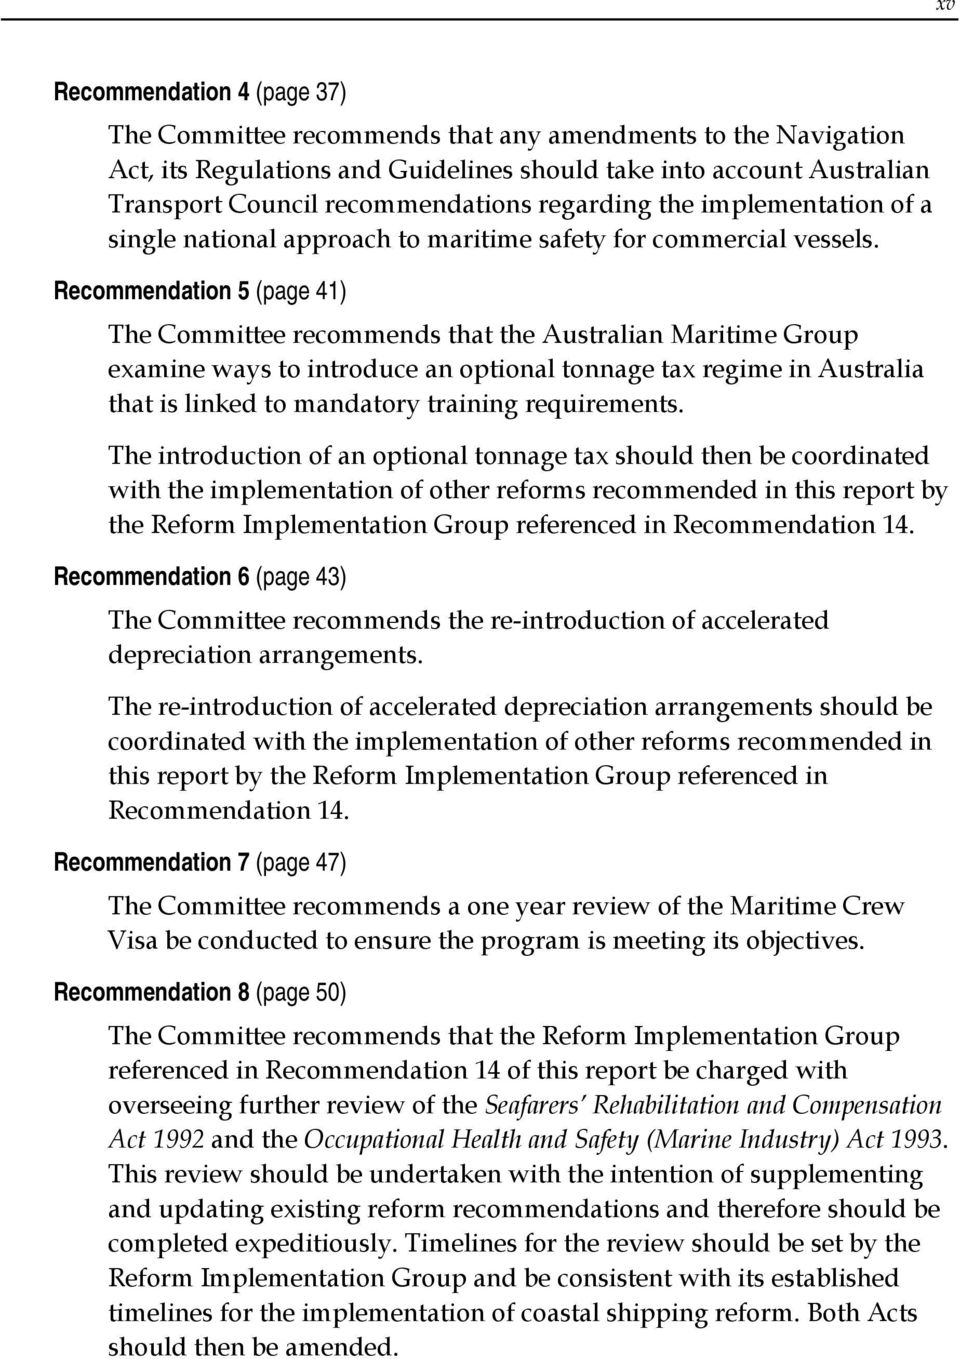 Recommendation 5 (page 41) The Committee recommends that the Australian Maritime Group examine ways to introduce an optional tonnage tax regime in Australia that is linked to mandatory training